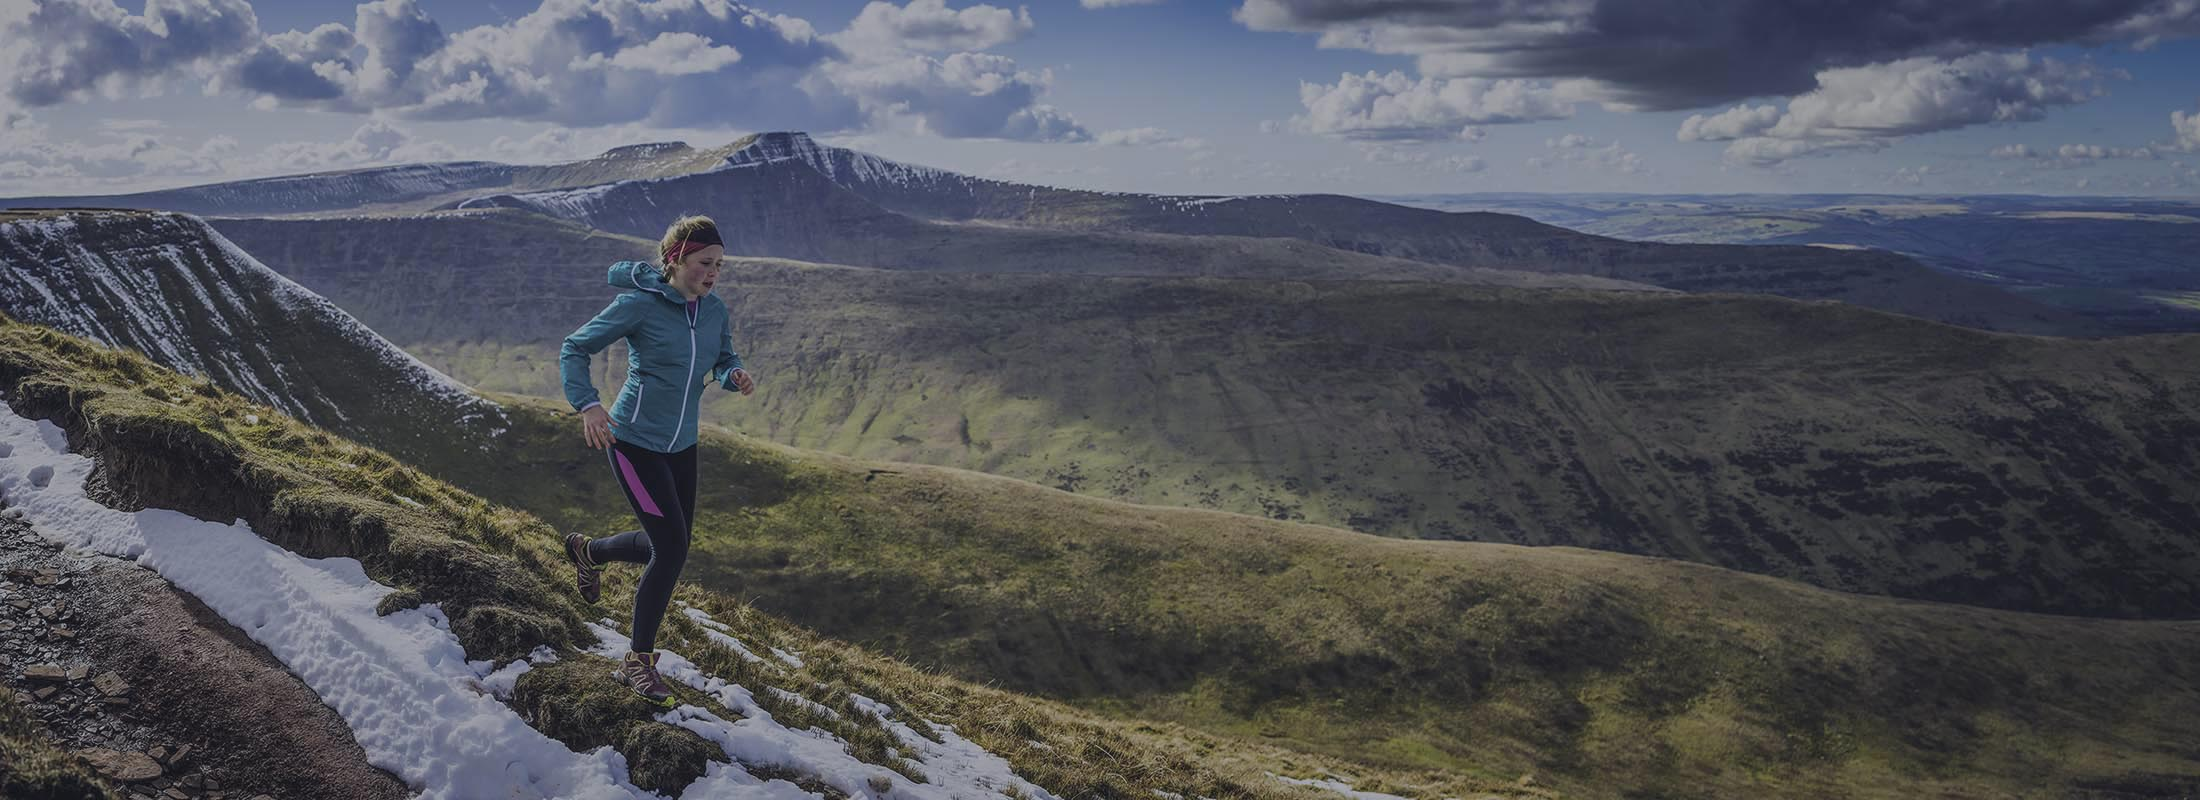 Brecon Beacons Trail Running Challenge 2022 – Saturday - Trail Events Co